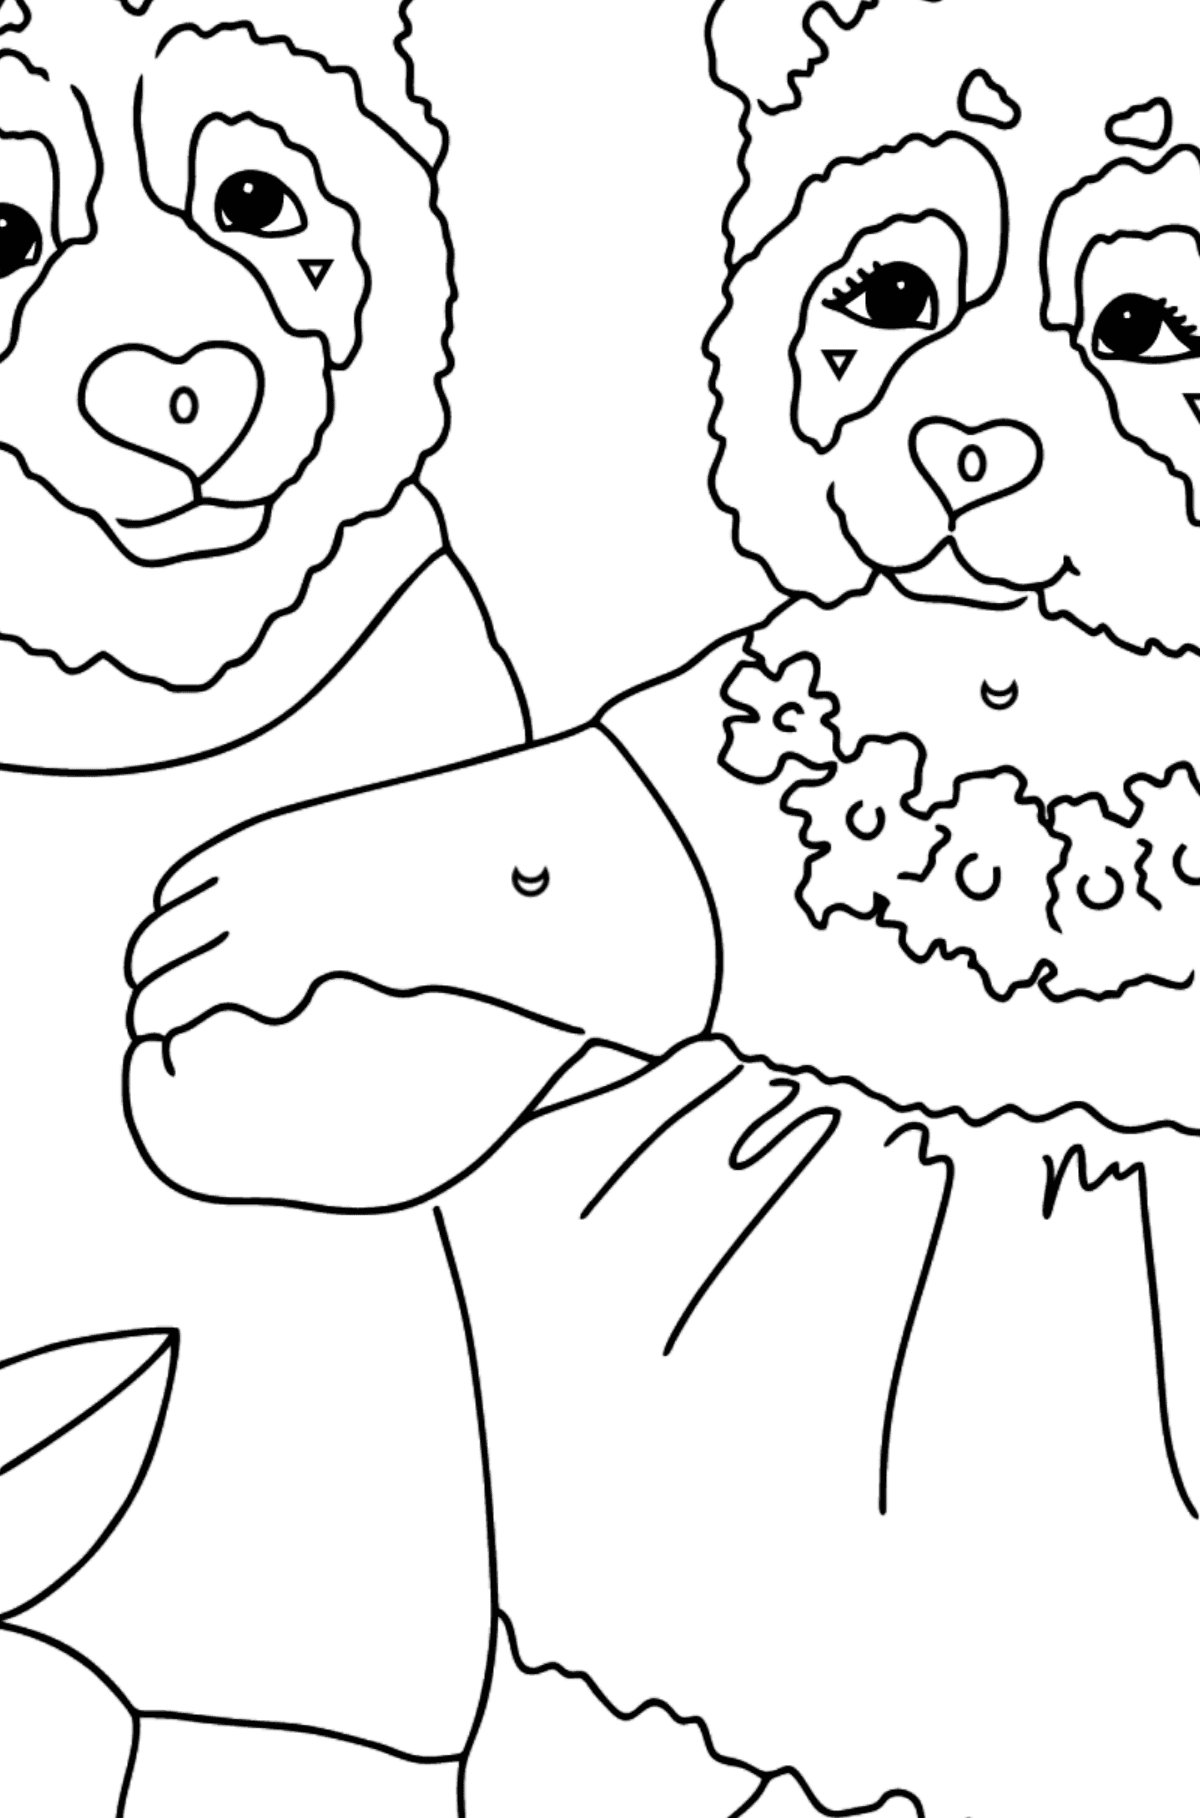 Coloring Page - Pandas Taking a Walk - Coloring by Symbols and Geometric Shapes for Kids